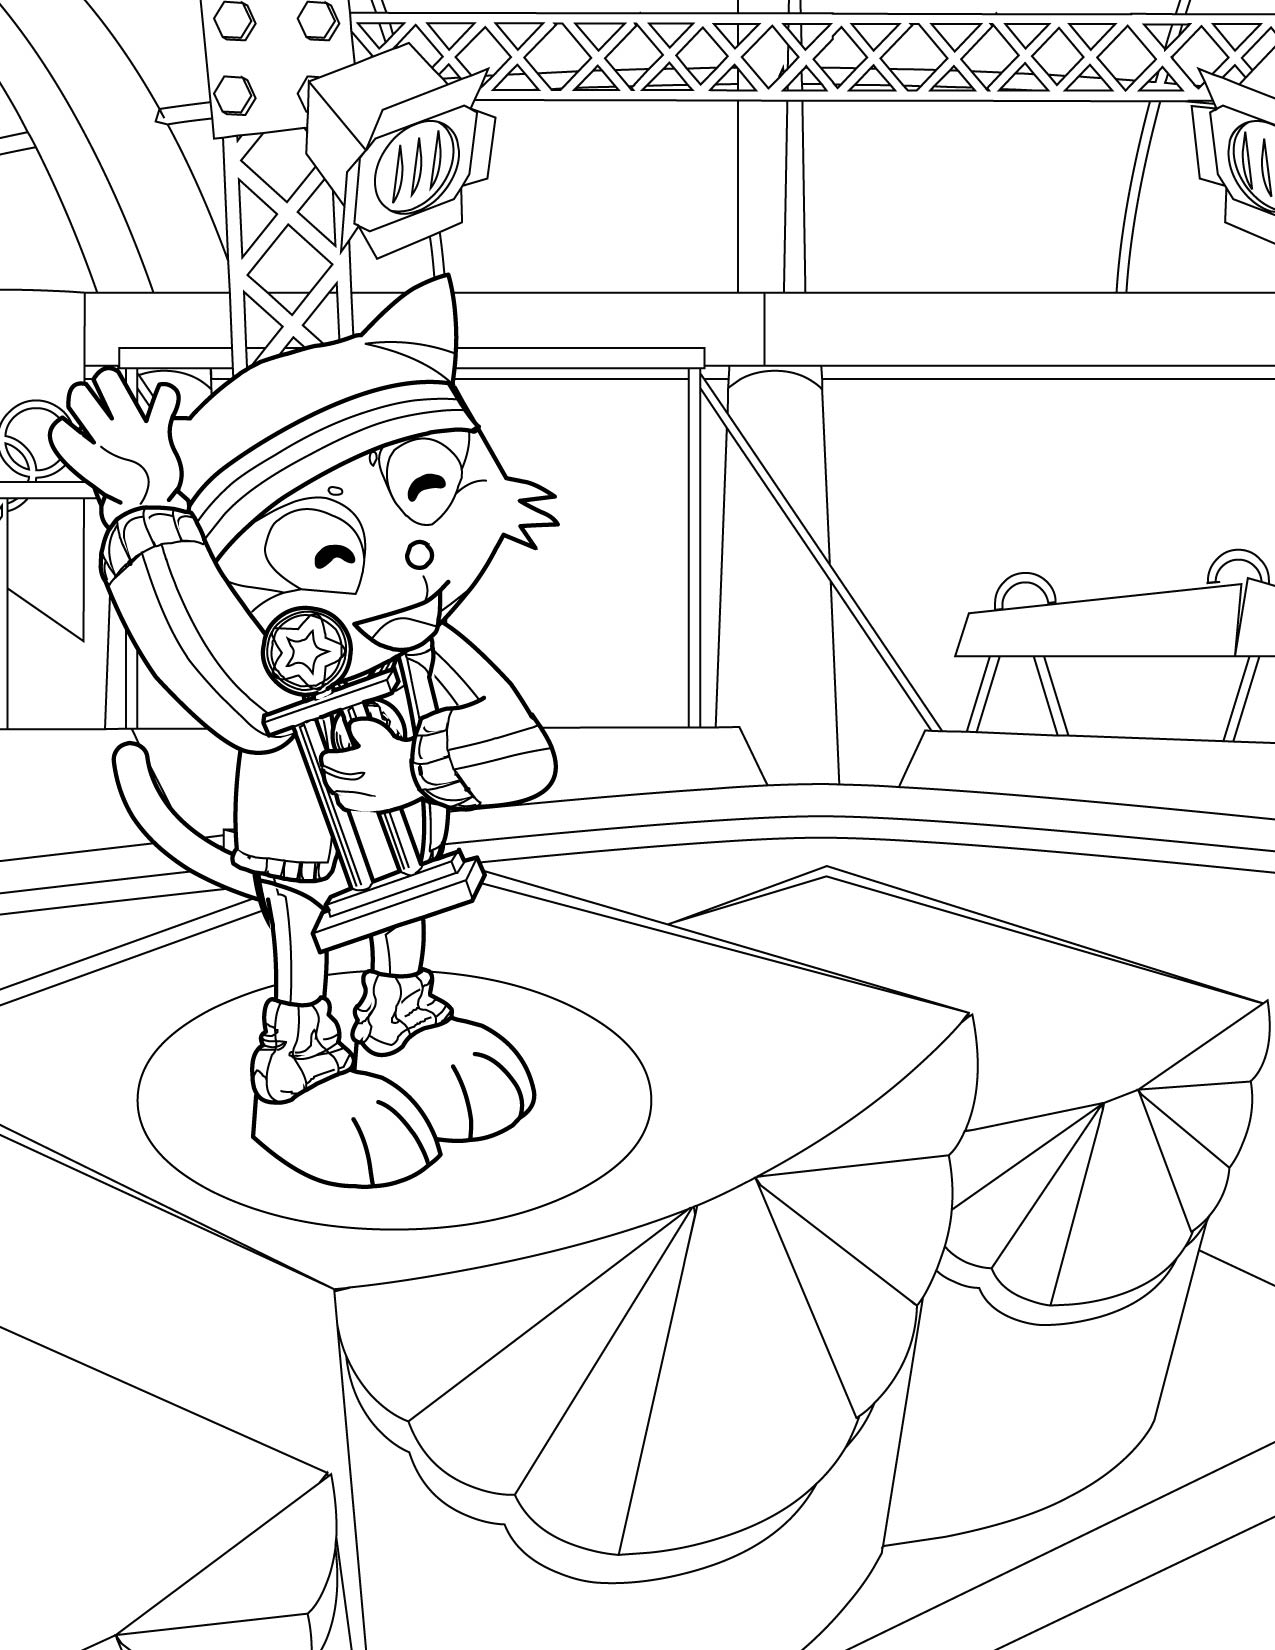 Coloring Pages Gymnastics Color Pages gymnast coloring pages eassume com page handipoints